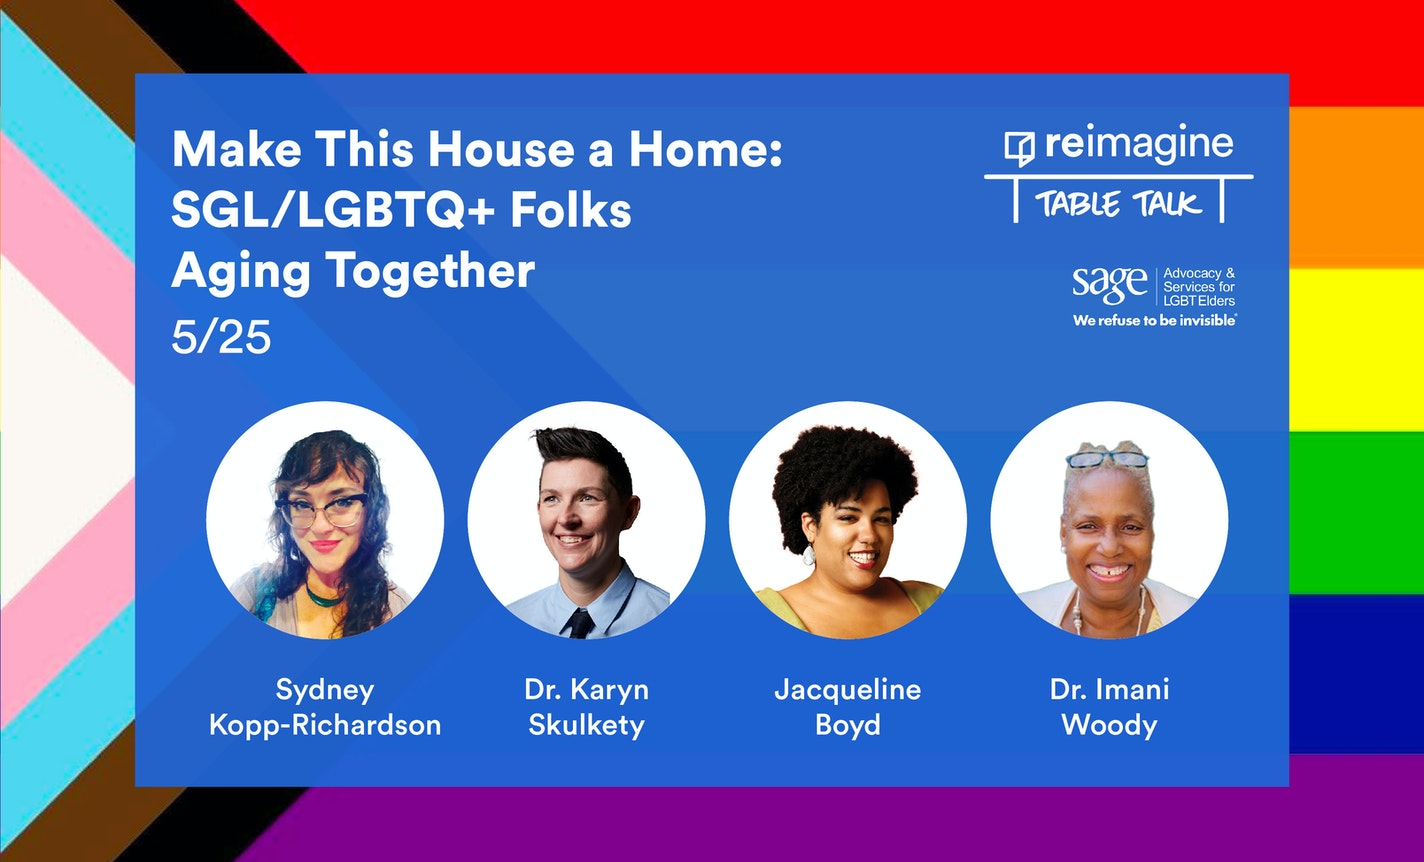 Make This House a Home: SGL/LGBTQ+ Folks Aging Together